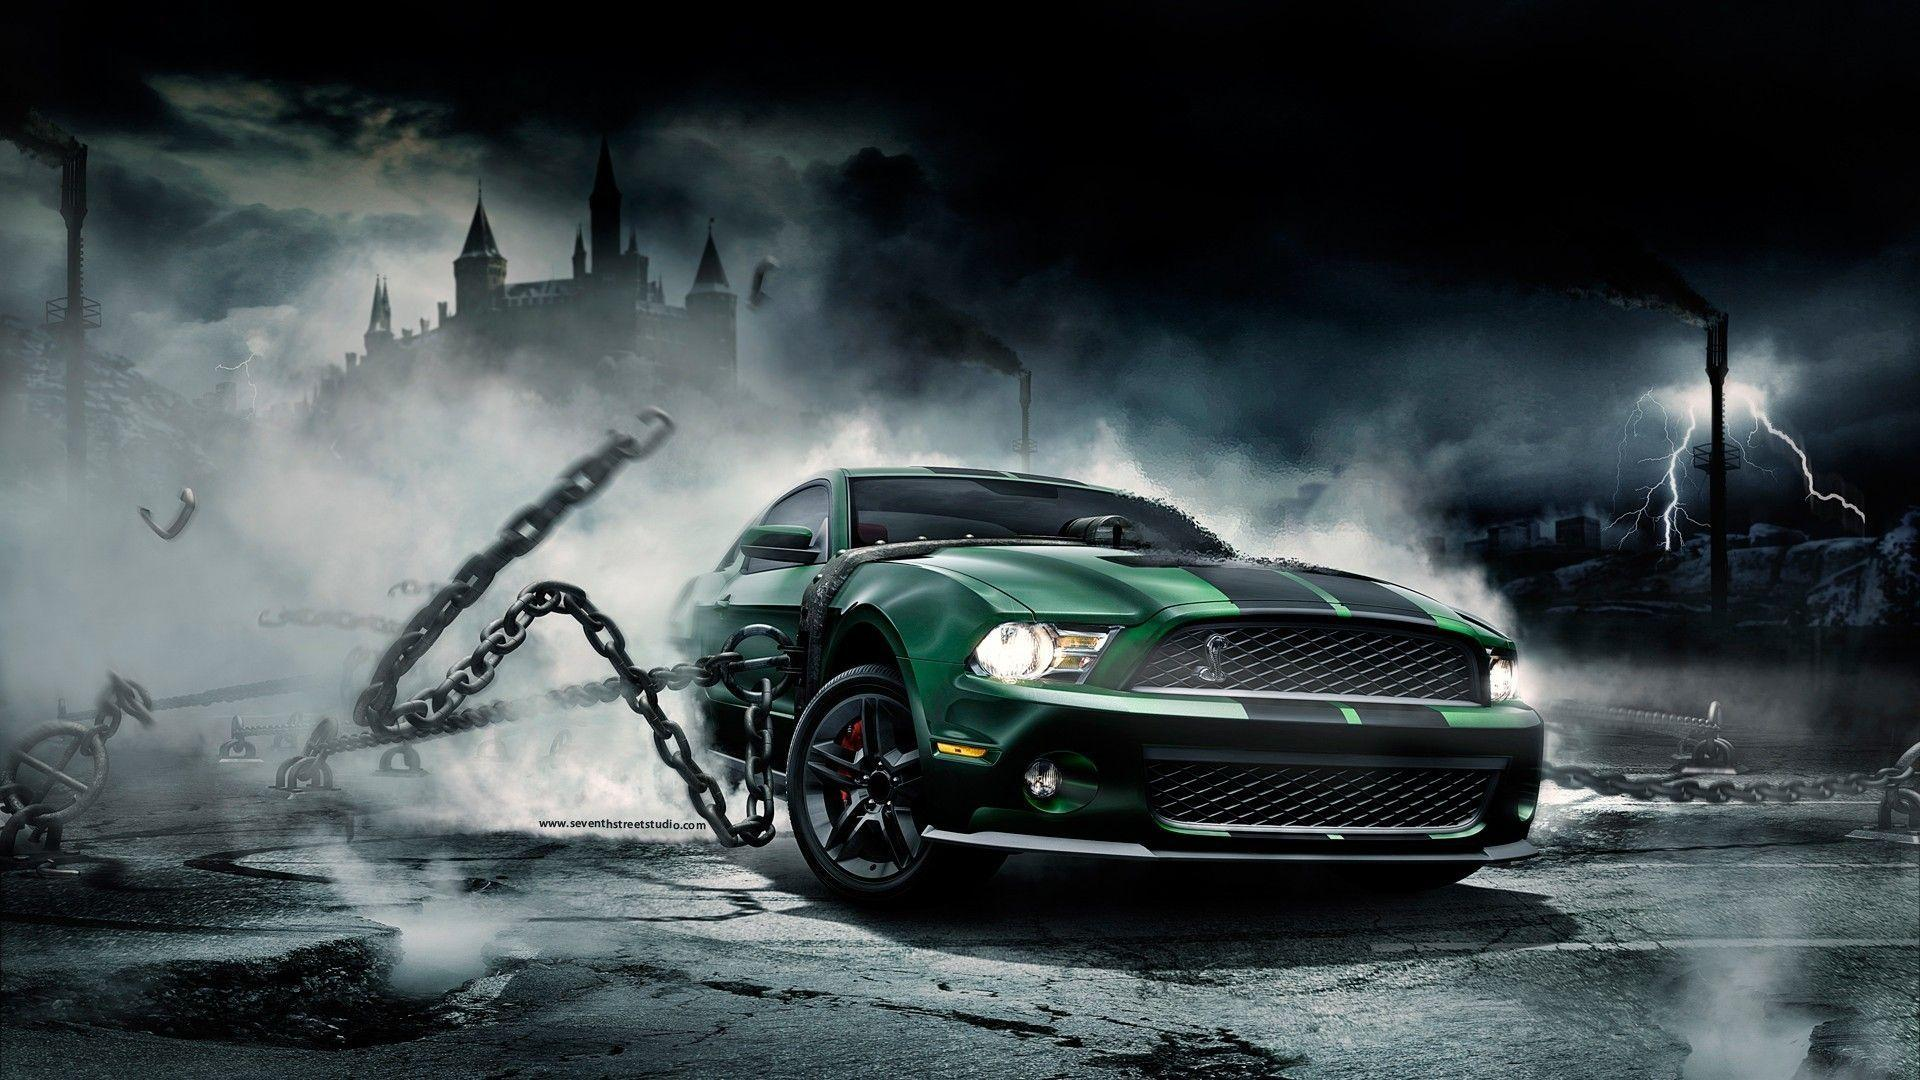 Here goes the list of cool car wallpapers to spice up your desktop or laptop 1. Desktop Car Hd Wallpaper For Pc Picture Idokeren